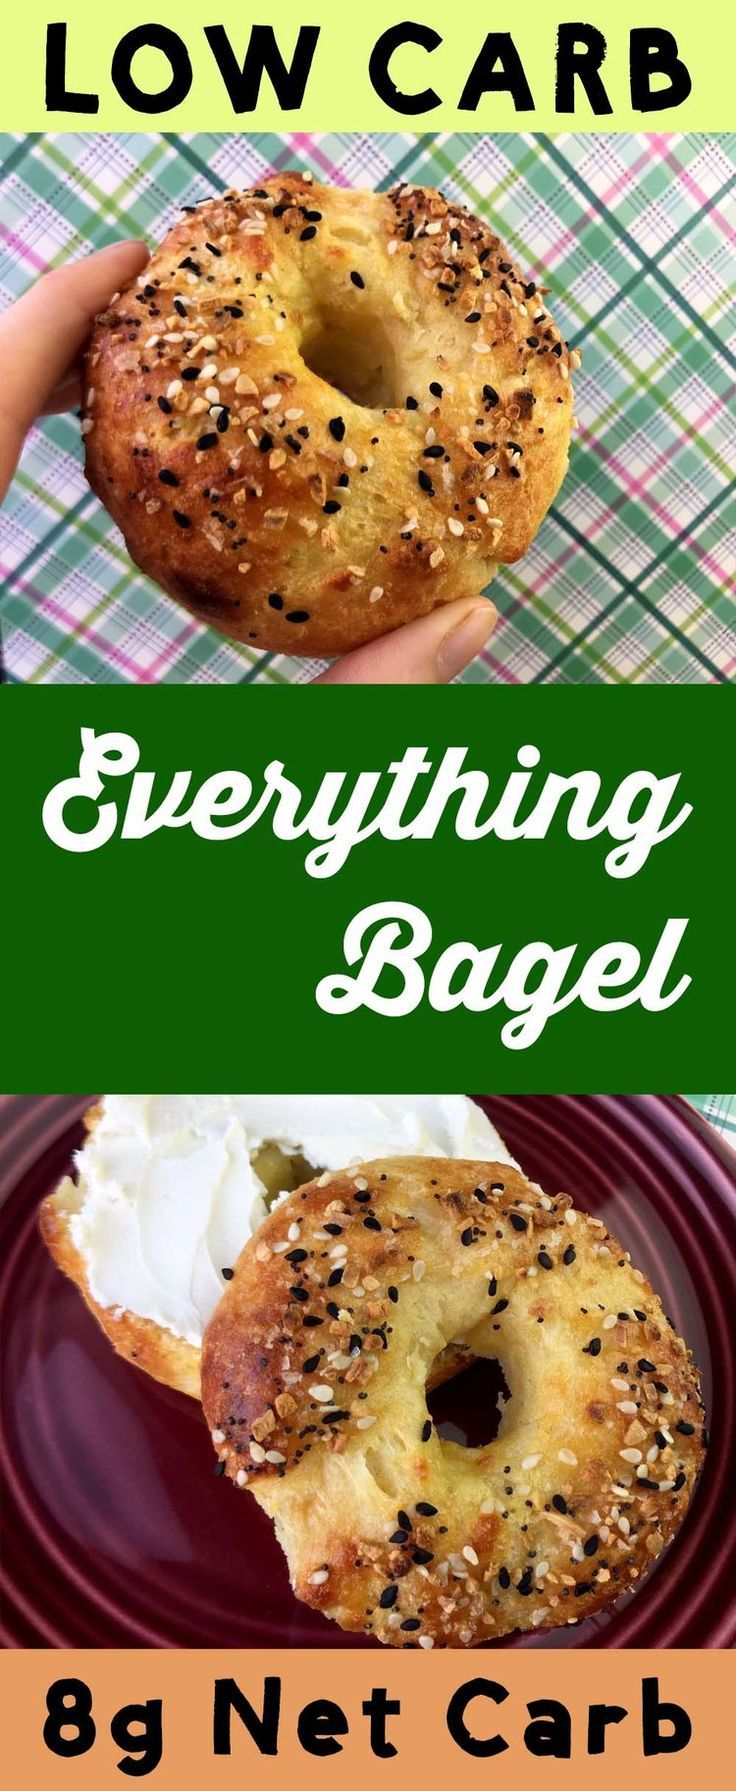 "This is a low carb take on the classic Everything Bagel.  It uses ""Fathead"" mozzarella cheese dough to recreate this basic breakfast.  It's Atkins, Banting, THM, LCHF, Sugar Free and Gluten Free. #Lowcarb #lowcarbdiet #keto #ketogenic #LCHF #diet #best #glutenfree #sugarfree"